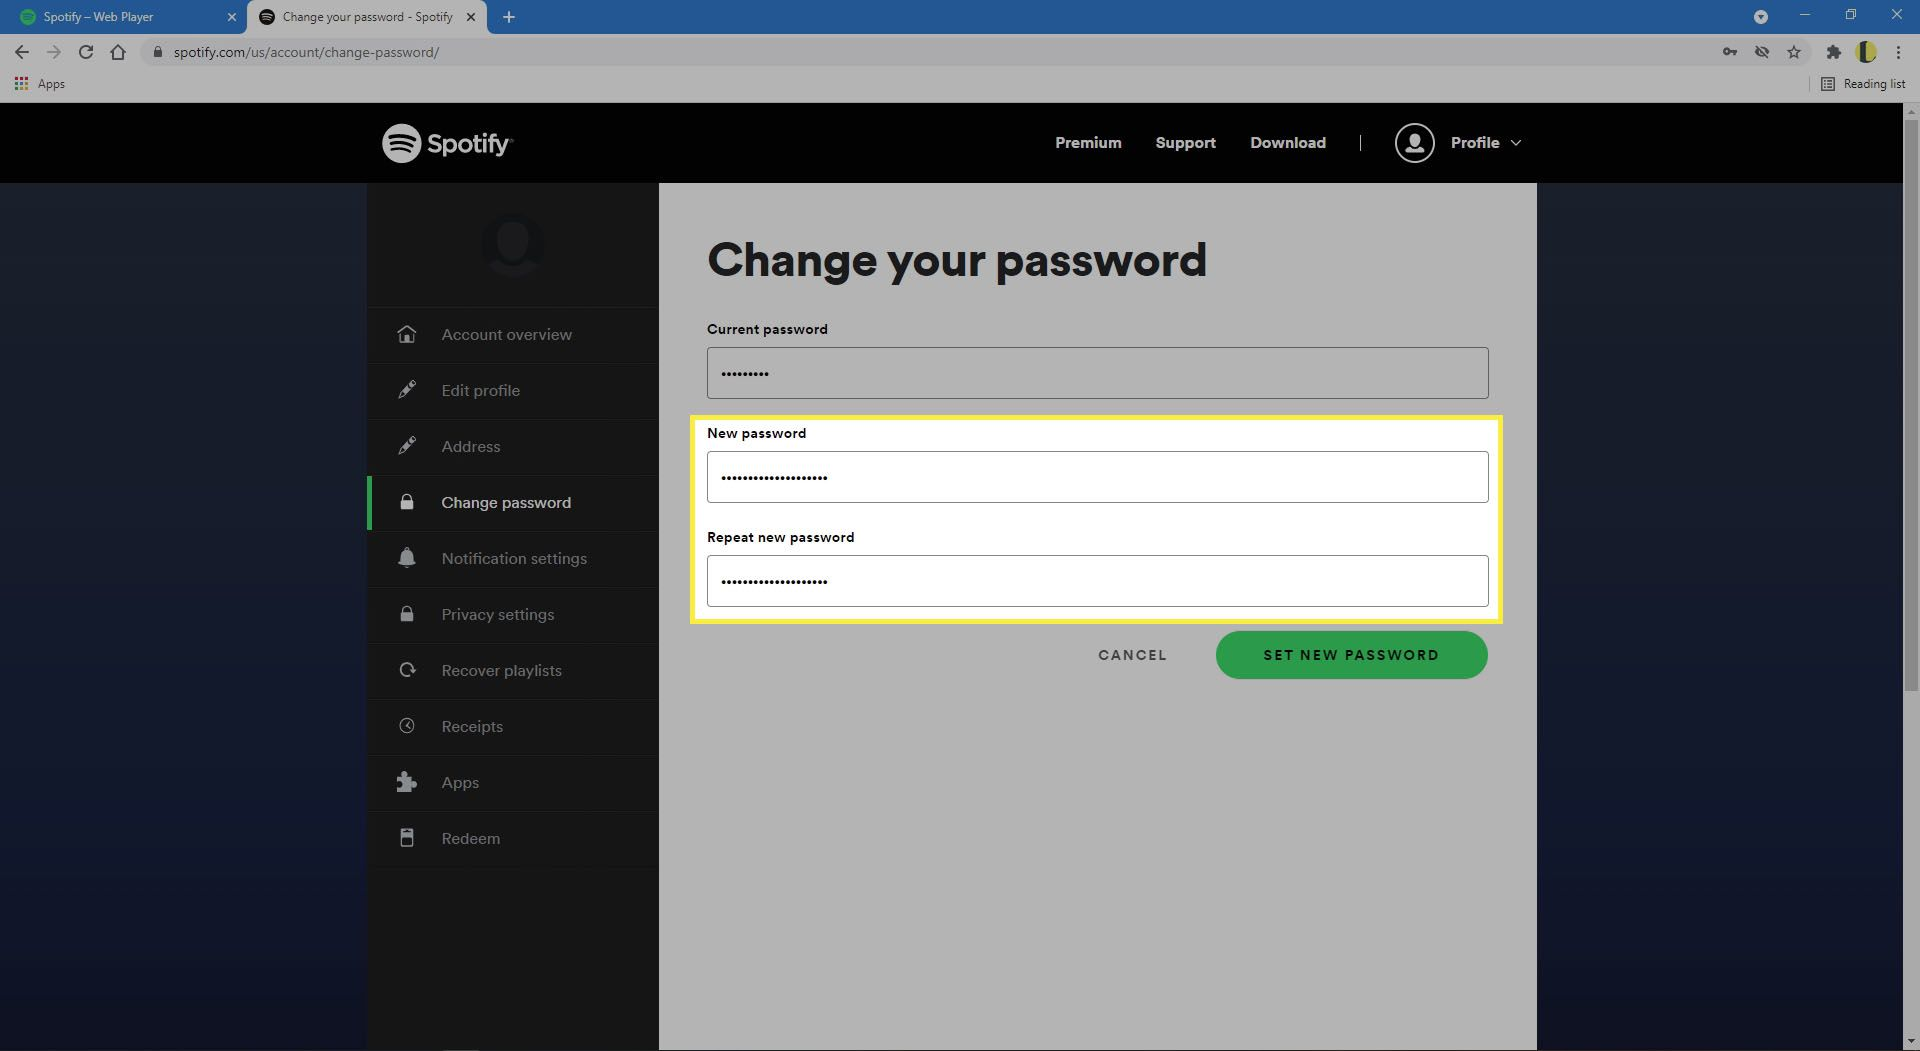 Entering in and confirming new password on the Spotify website.